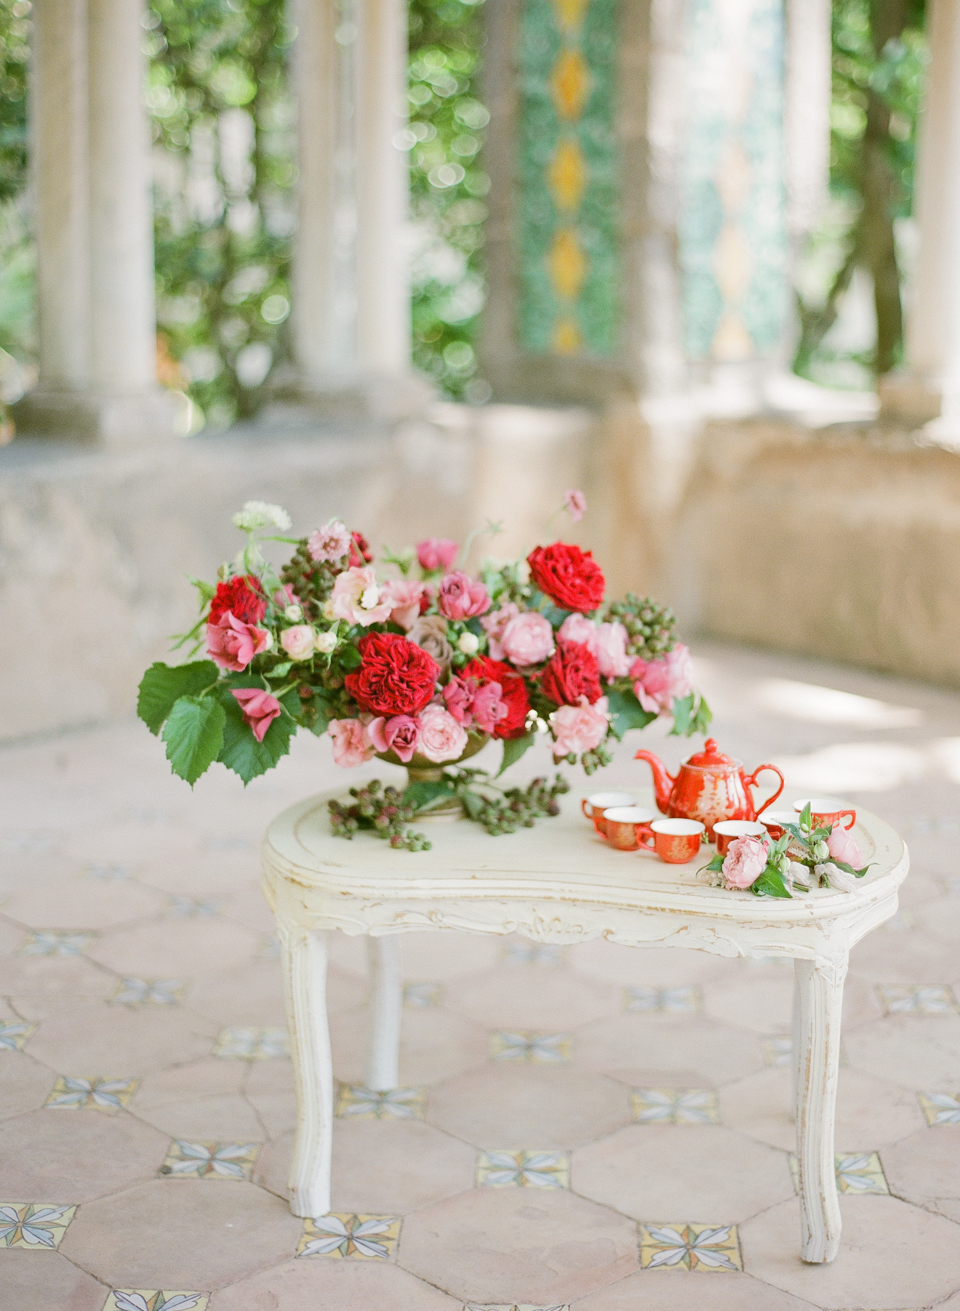 adrienne cameron wedding tea ceremony red flowers